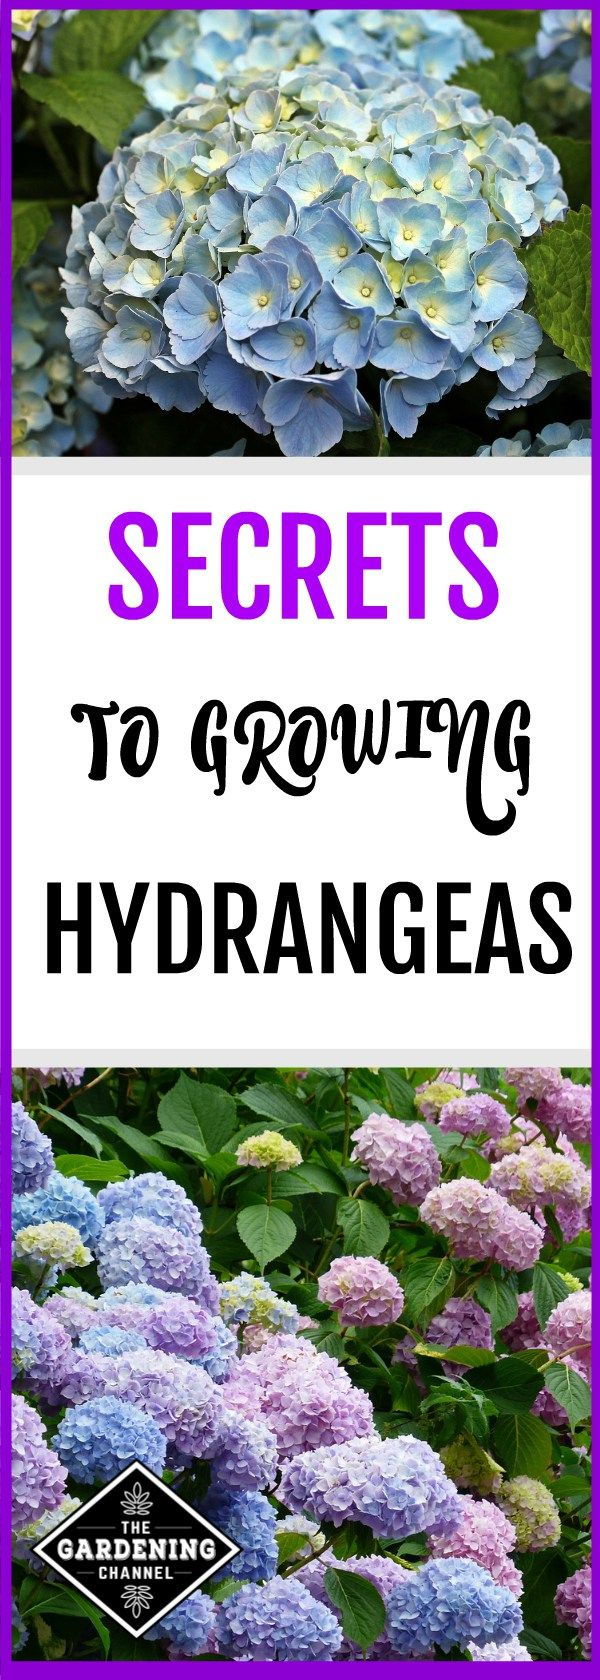 Learn growing tips for hydrangeas. With proper care, hydrangeas will grace your garden with large blooms for 30 plus years.